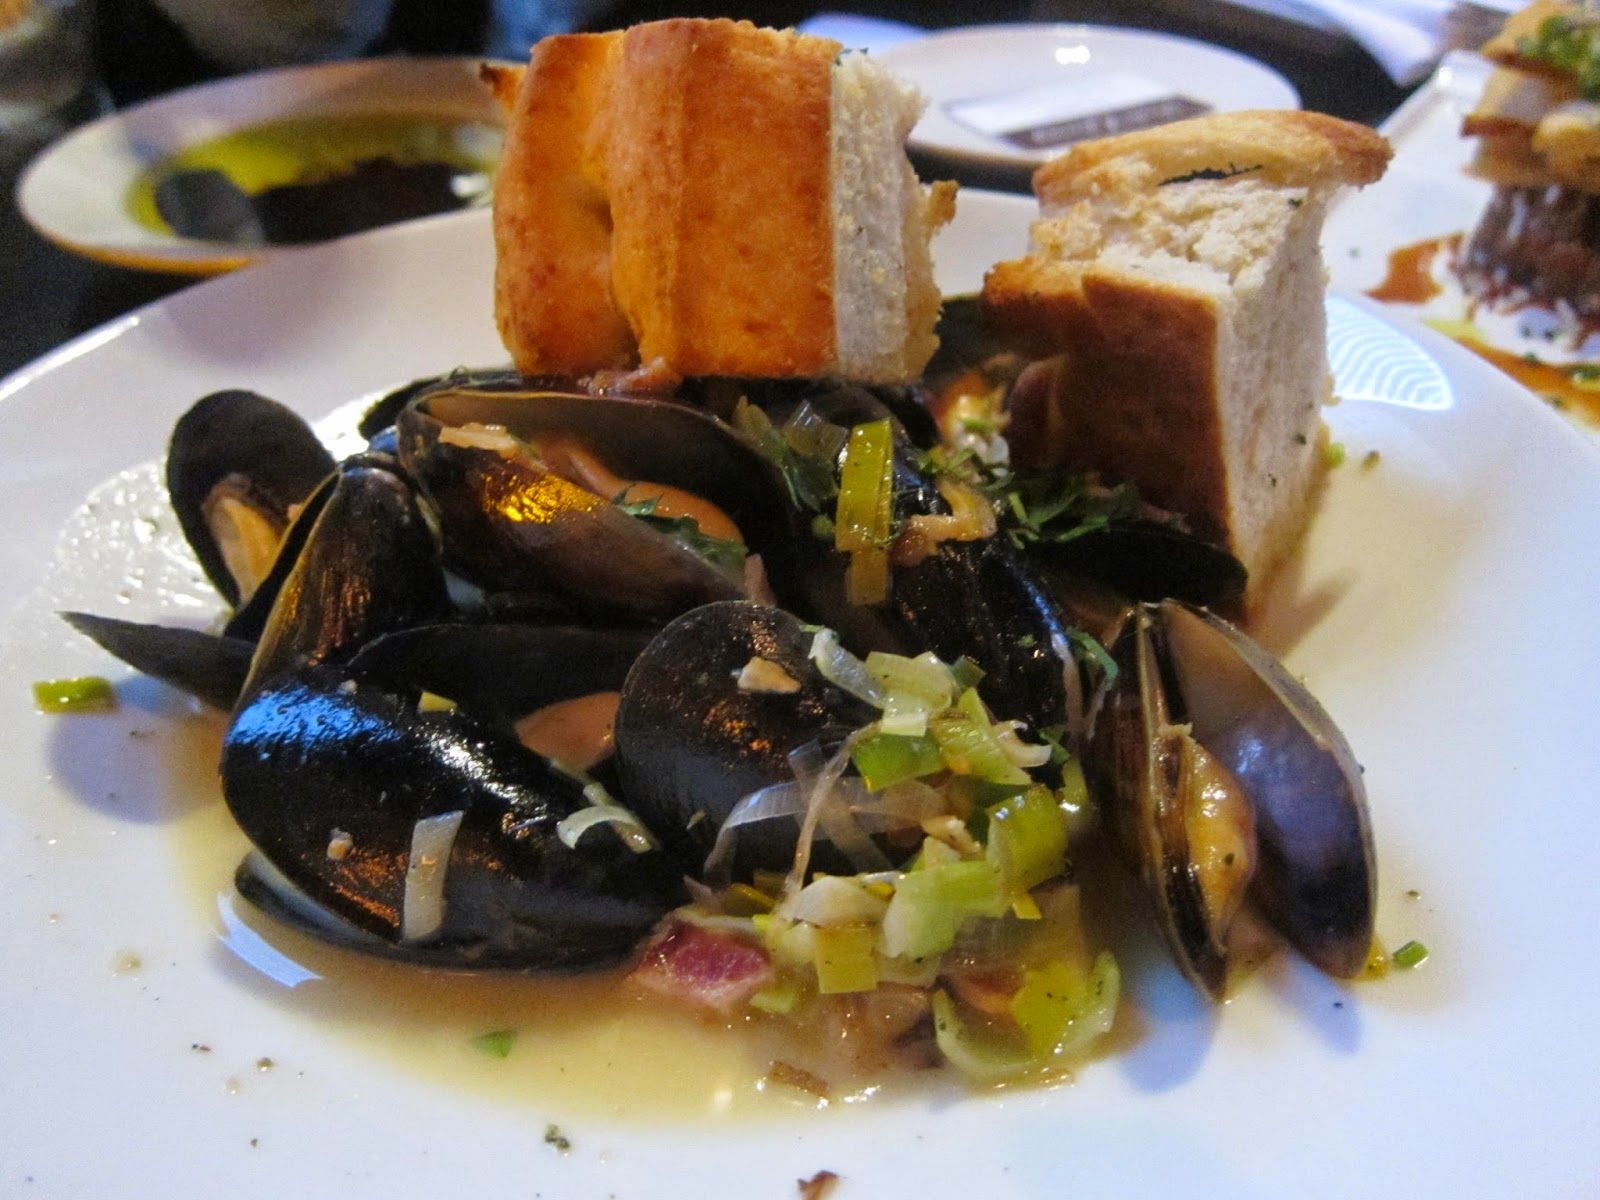 P.E.I. Mussels at Orta in Pembroke, Mass. | The Economical Eater